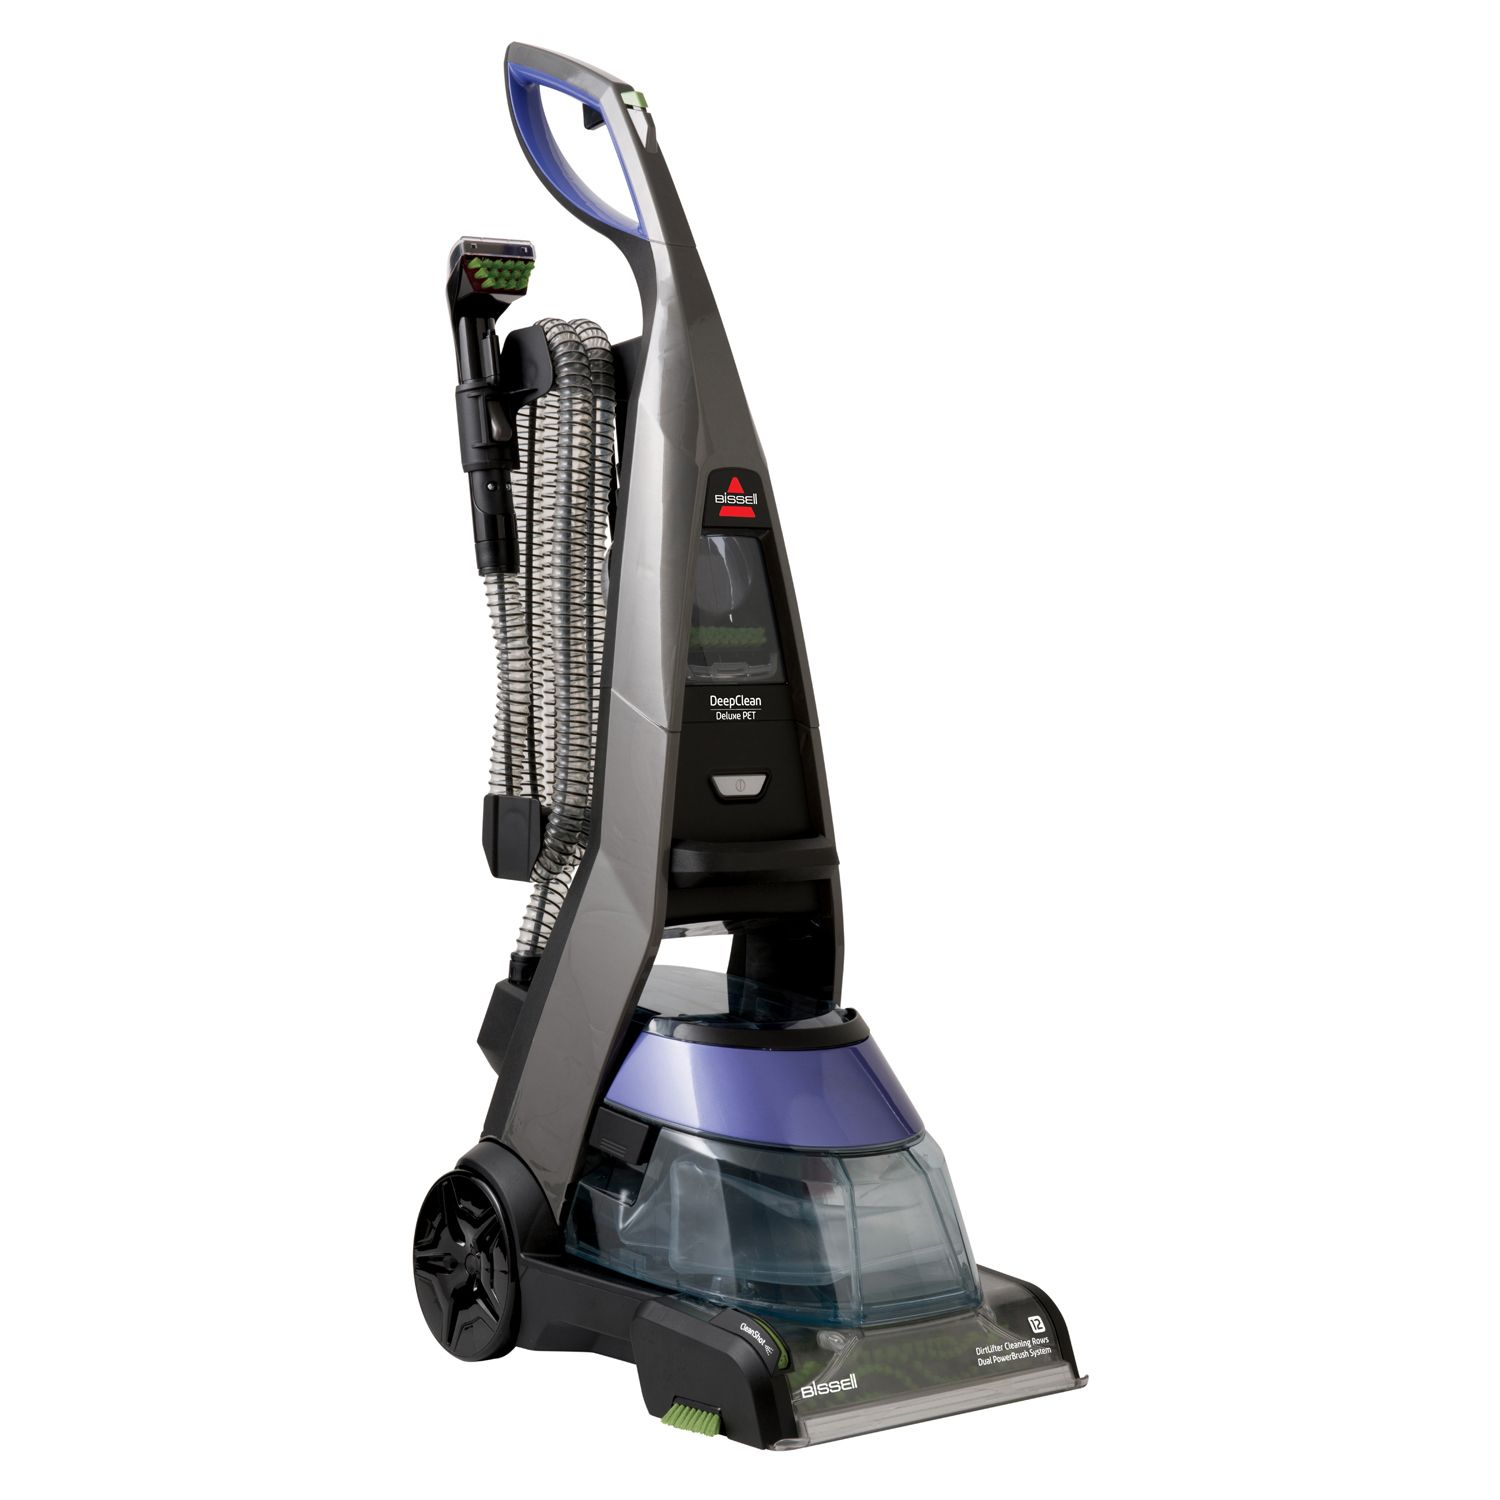 bissell deepclean deluxe pet upright deep cleaner - Bissell Carpet Cleaners